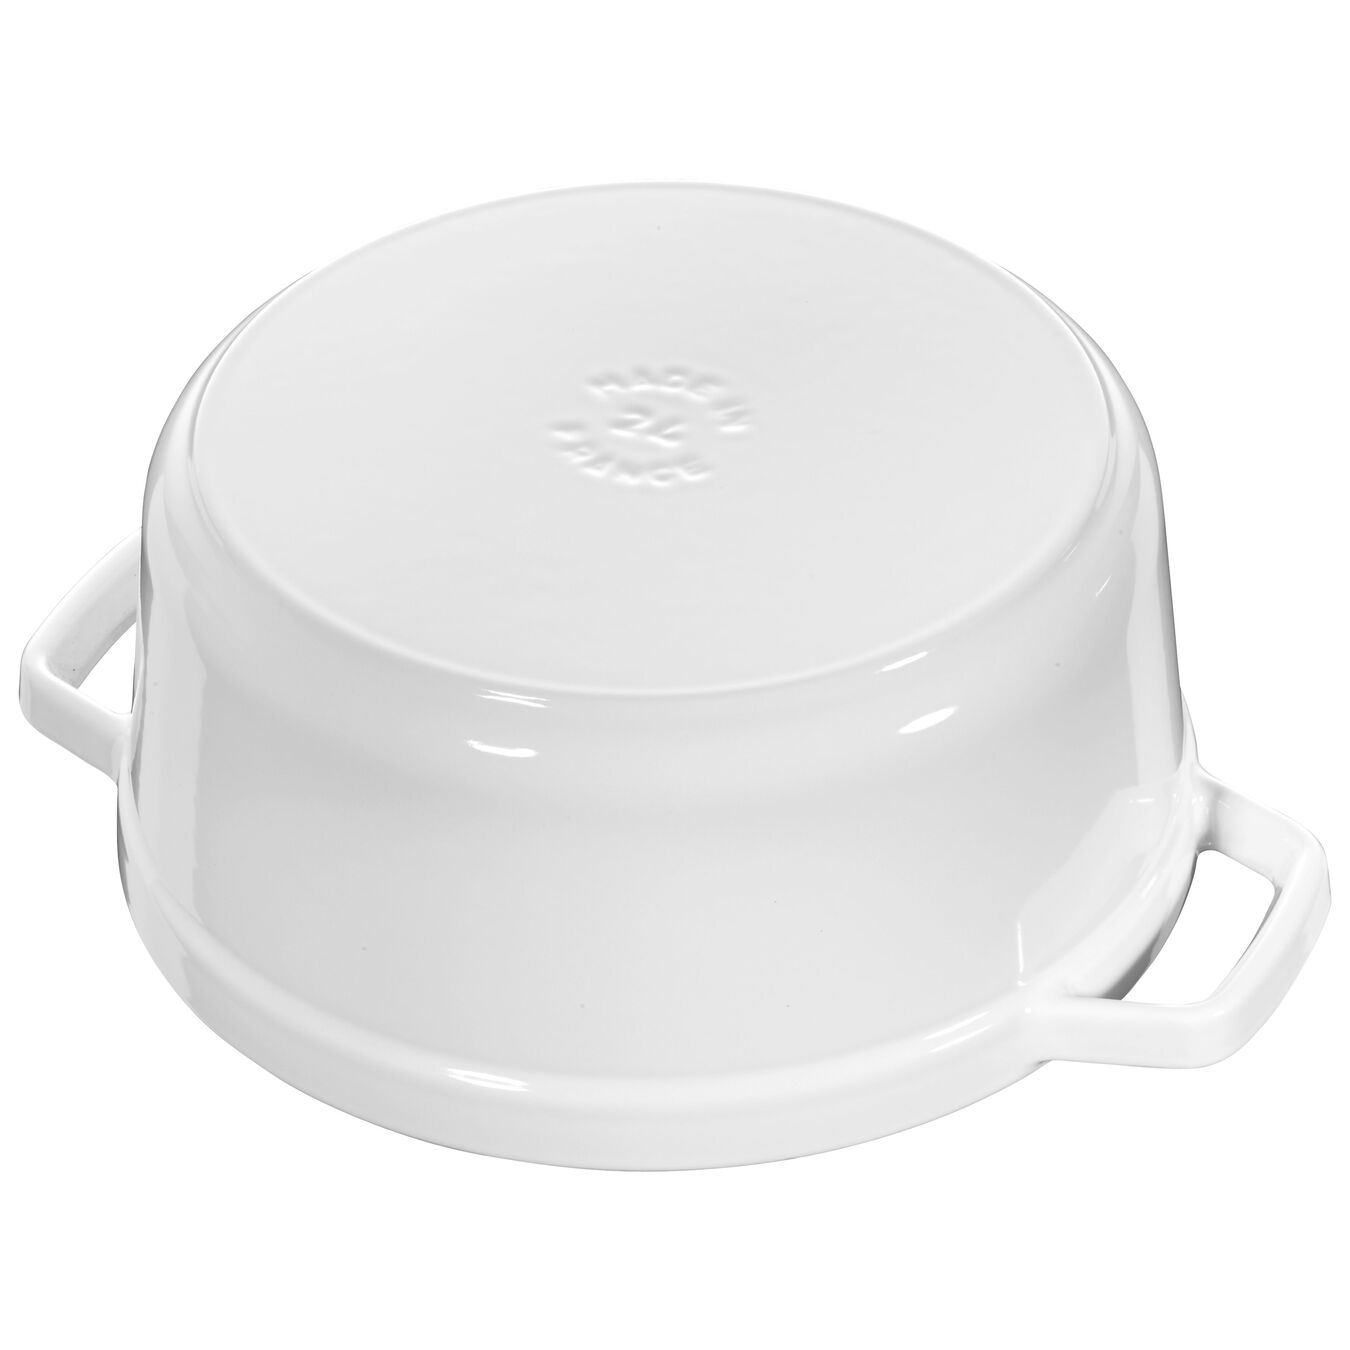 4 qt, round, Cocotte, white - Visual Imperfections,,large 5